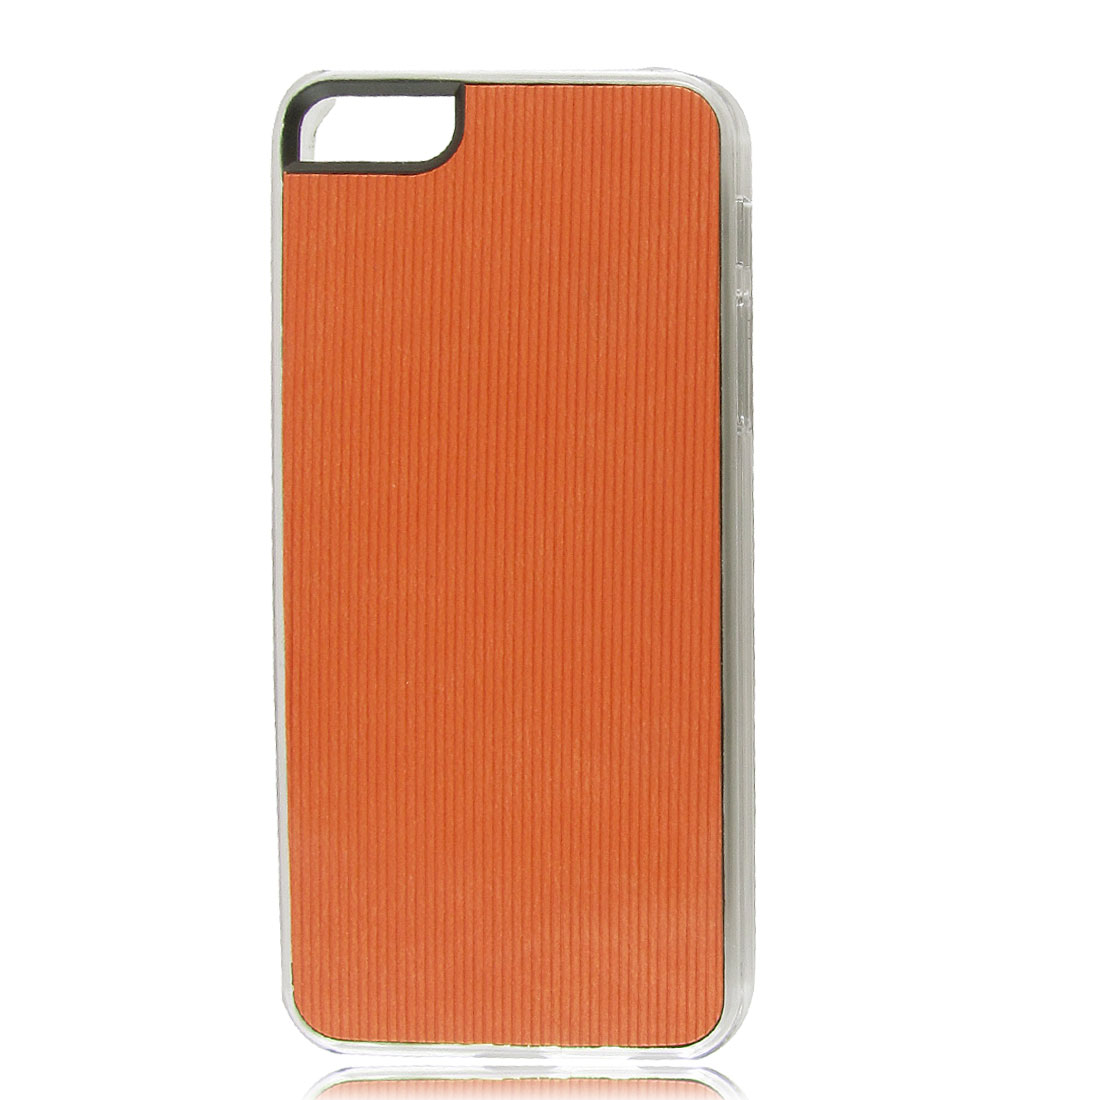 Orange Faux Leather Coated Pinstripe Hard Back Case Cover for iPhone 5 5G 5th